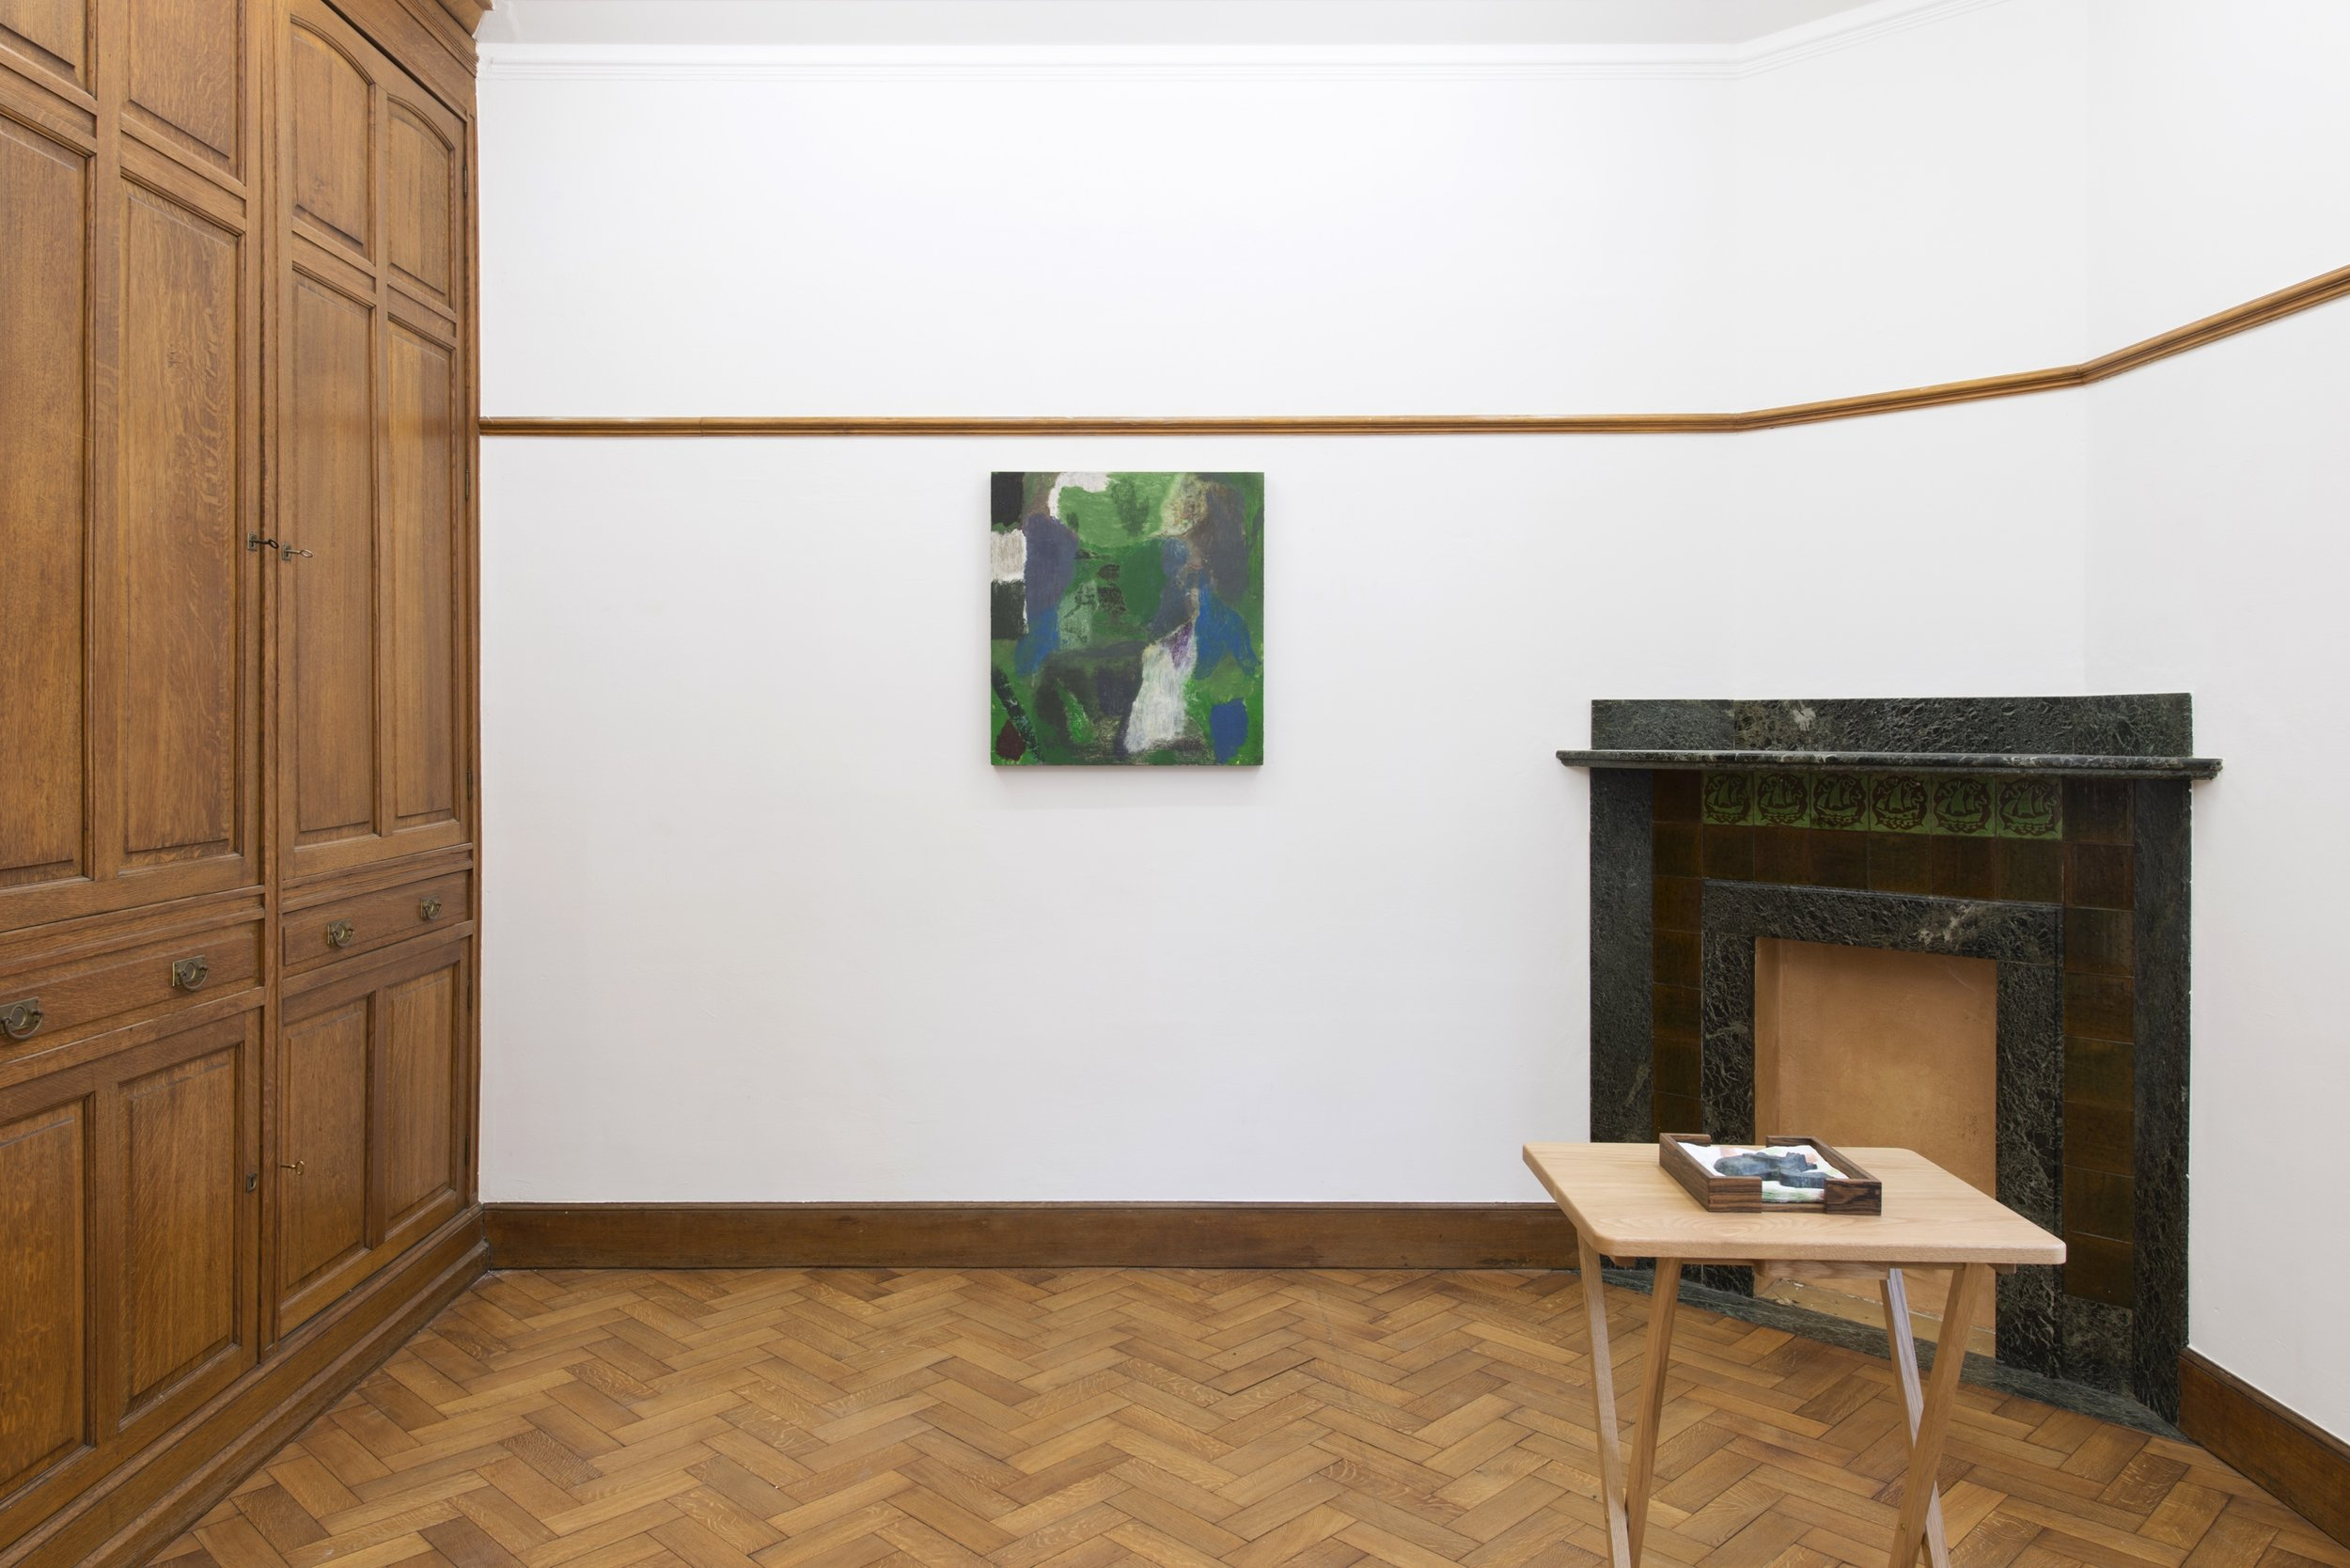 """Andy Giannakakis, """"The Earth Axis Tilt Shifts,"""" installation view, Park View/Paul Soto, Brussels, Belgium, 2018"""